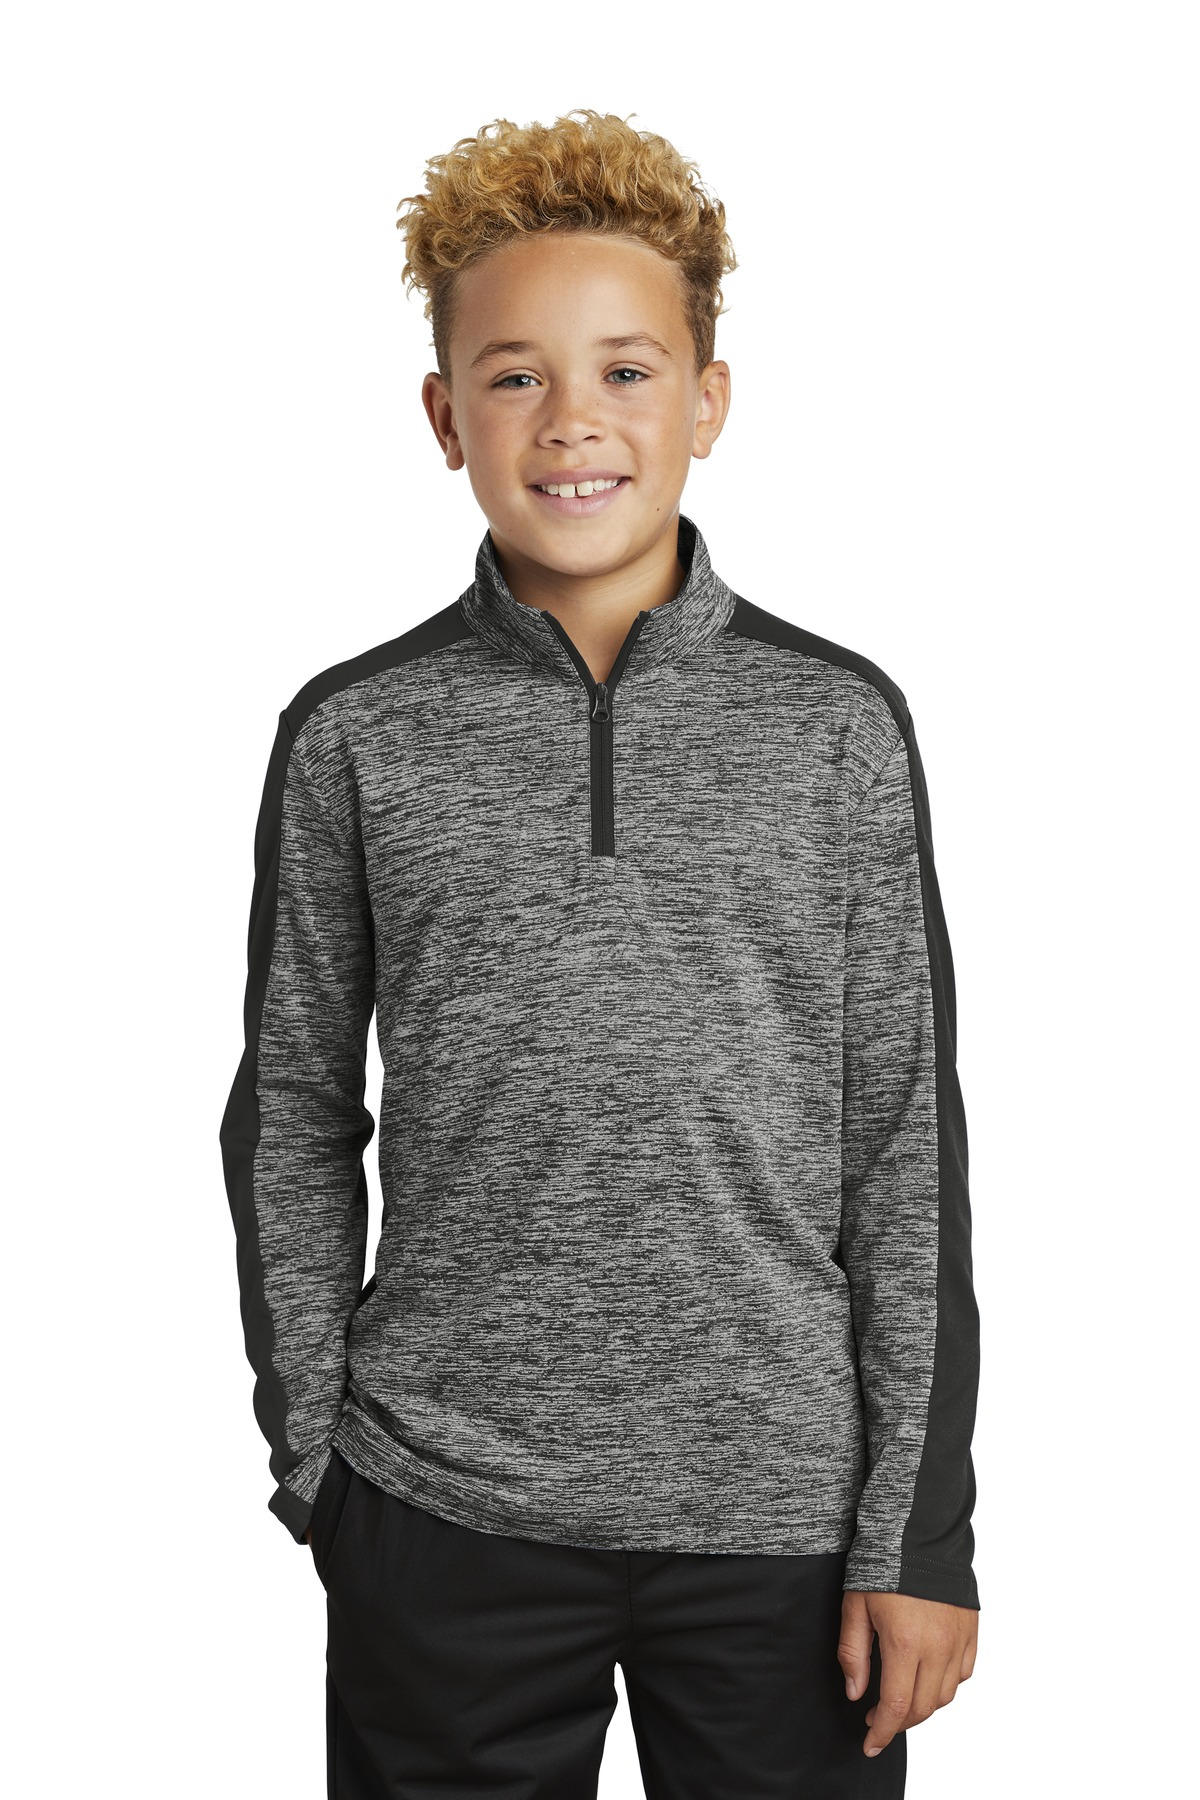 Sport-Tek  ®  Youth PosiCharge  ®  Electric Heather Colorblock 1/4-Zip Pullover. YST397 - Black Electric/ Black